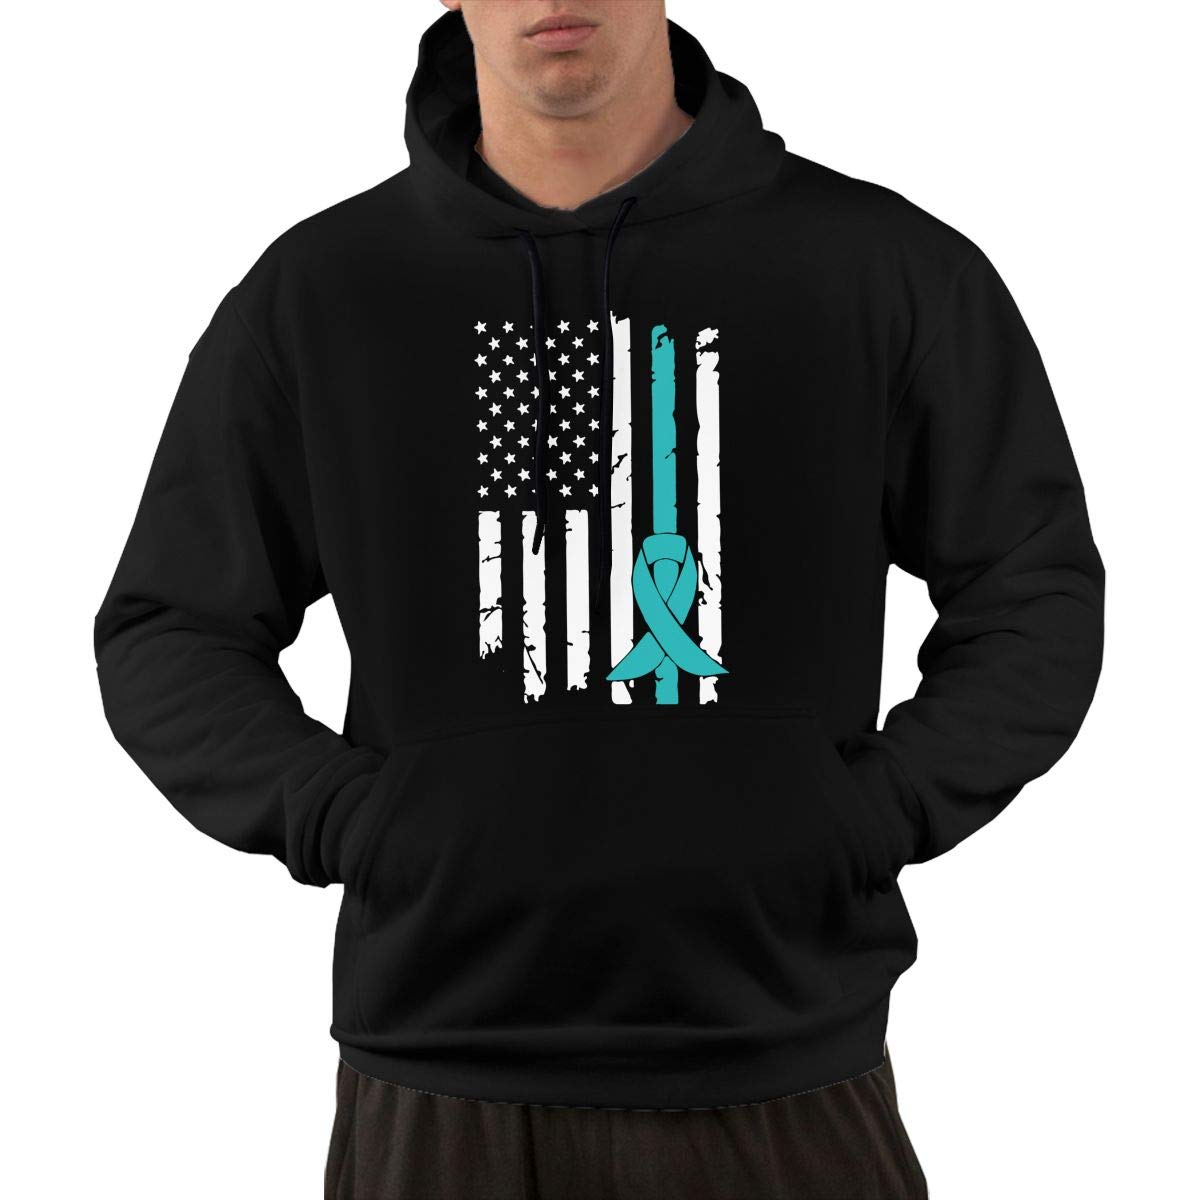 KEQ/&JSW Mens Long Sleeve Fleece Hoodie PCOS Cancer Awareness USA Flag-1 Sweater with Pockets